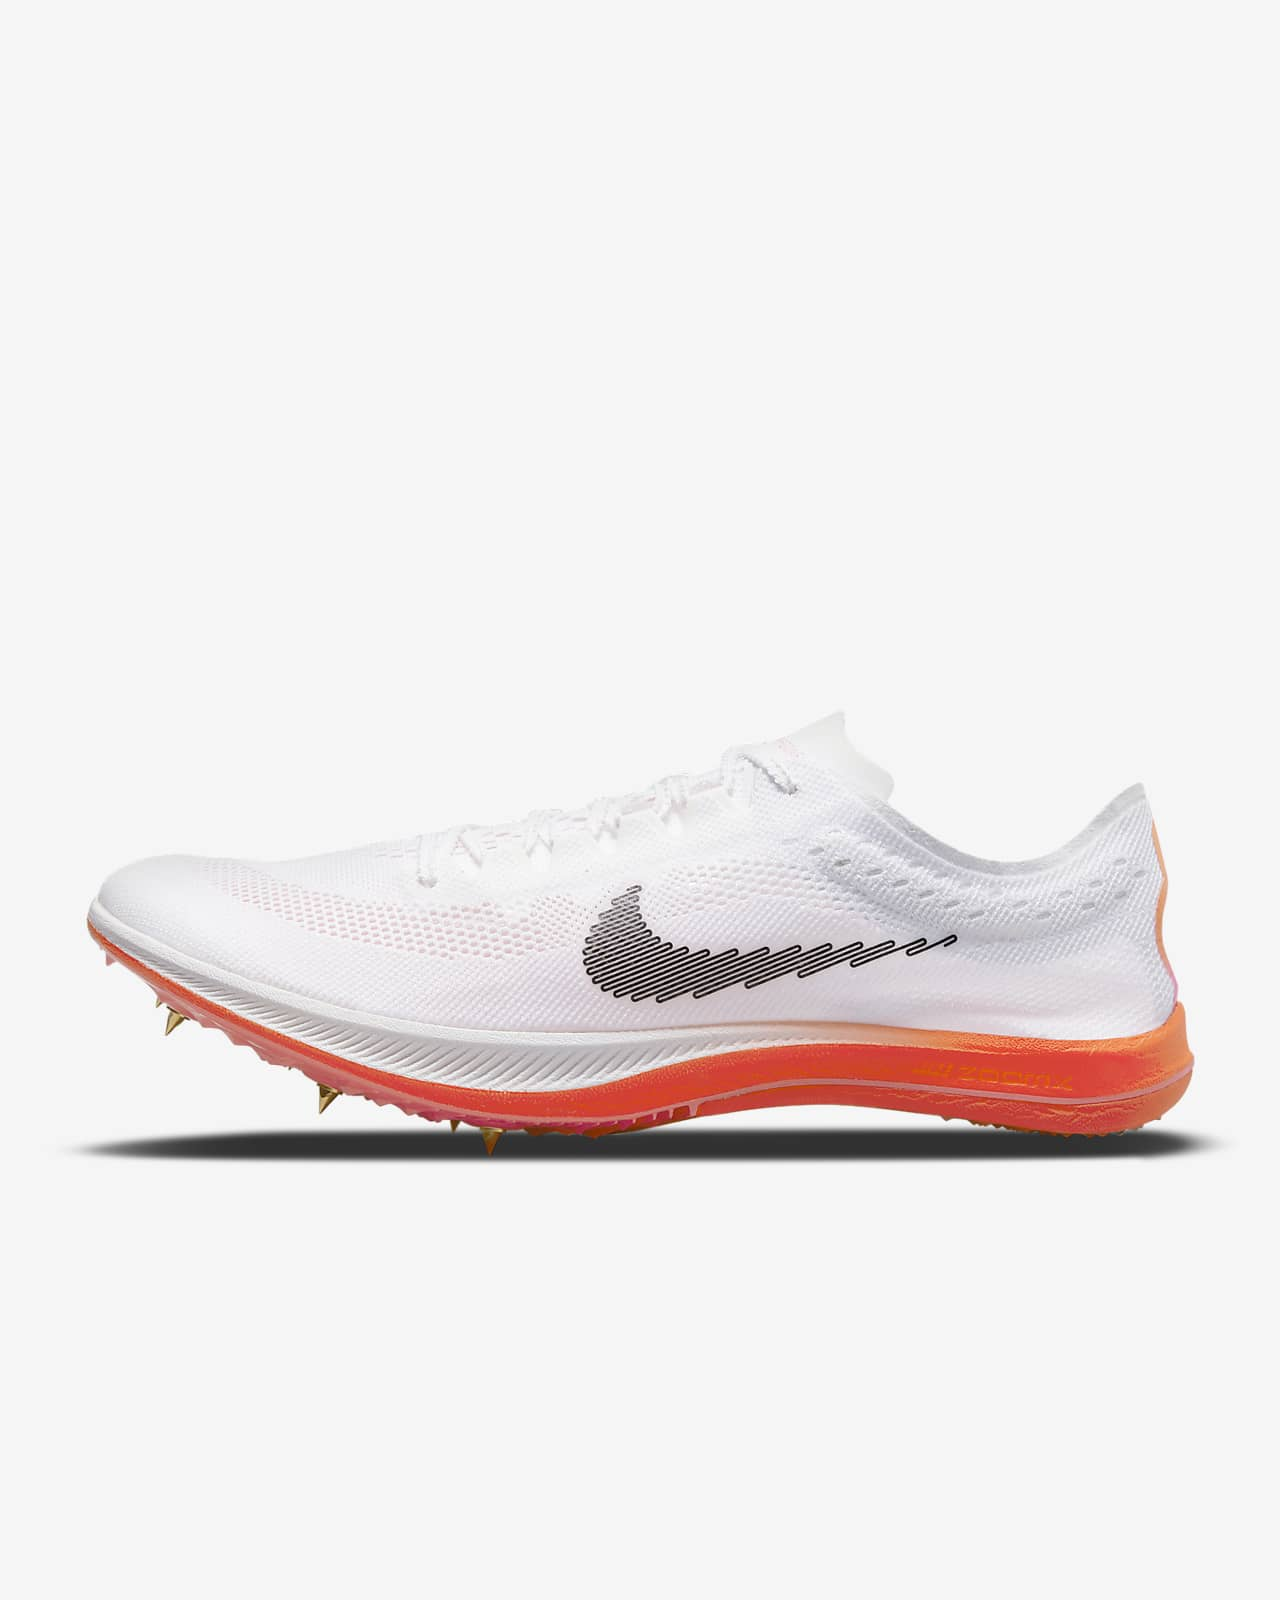 Nike ZoomX Dragonfly Track and Field distance spikes